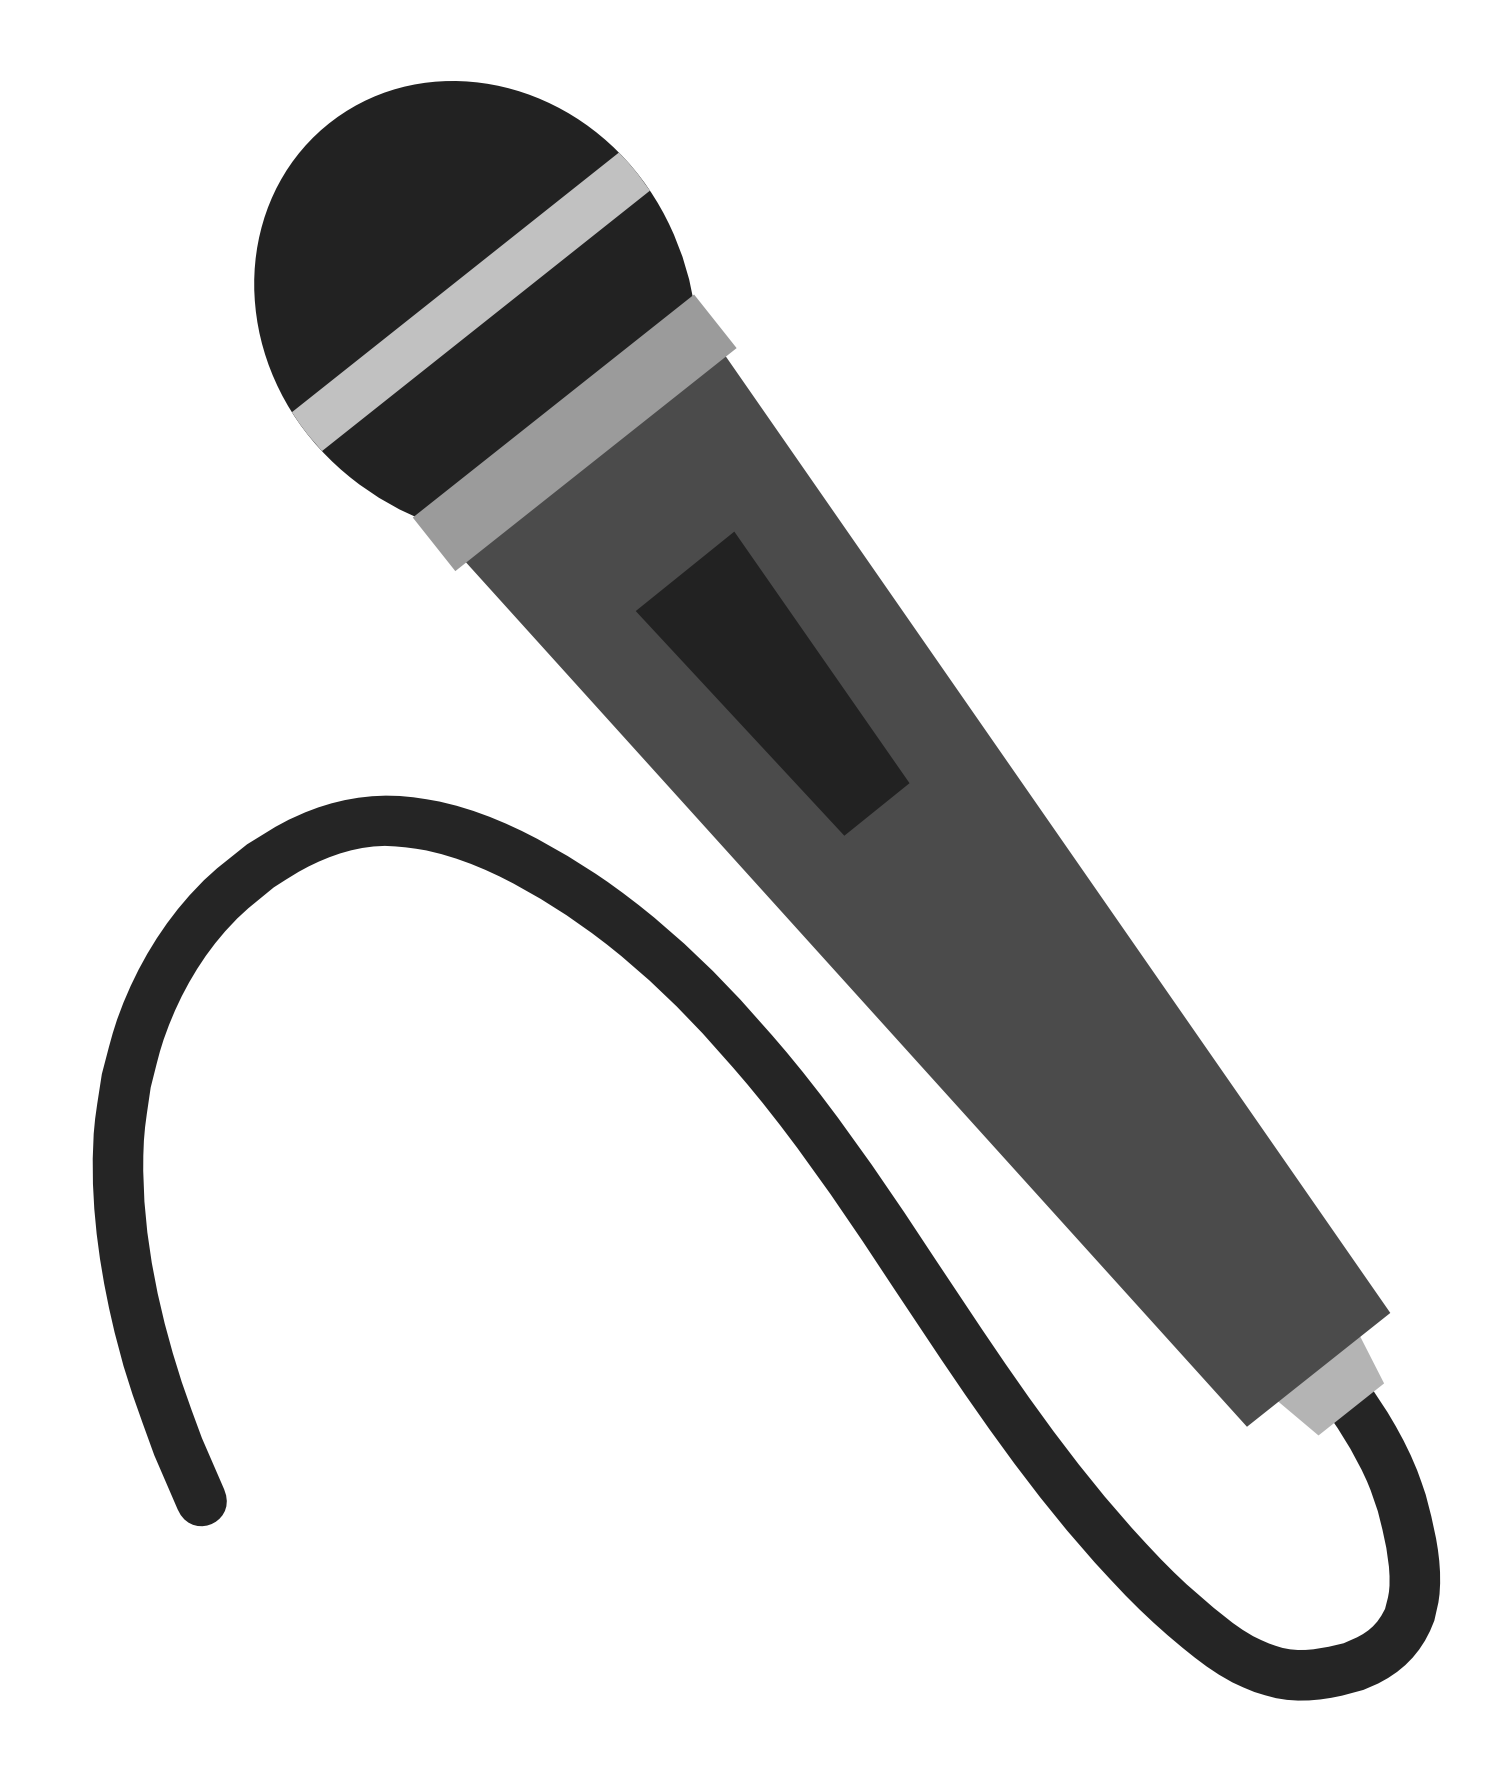 Radio microphone free clipart images.